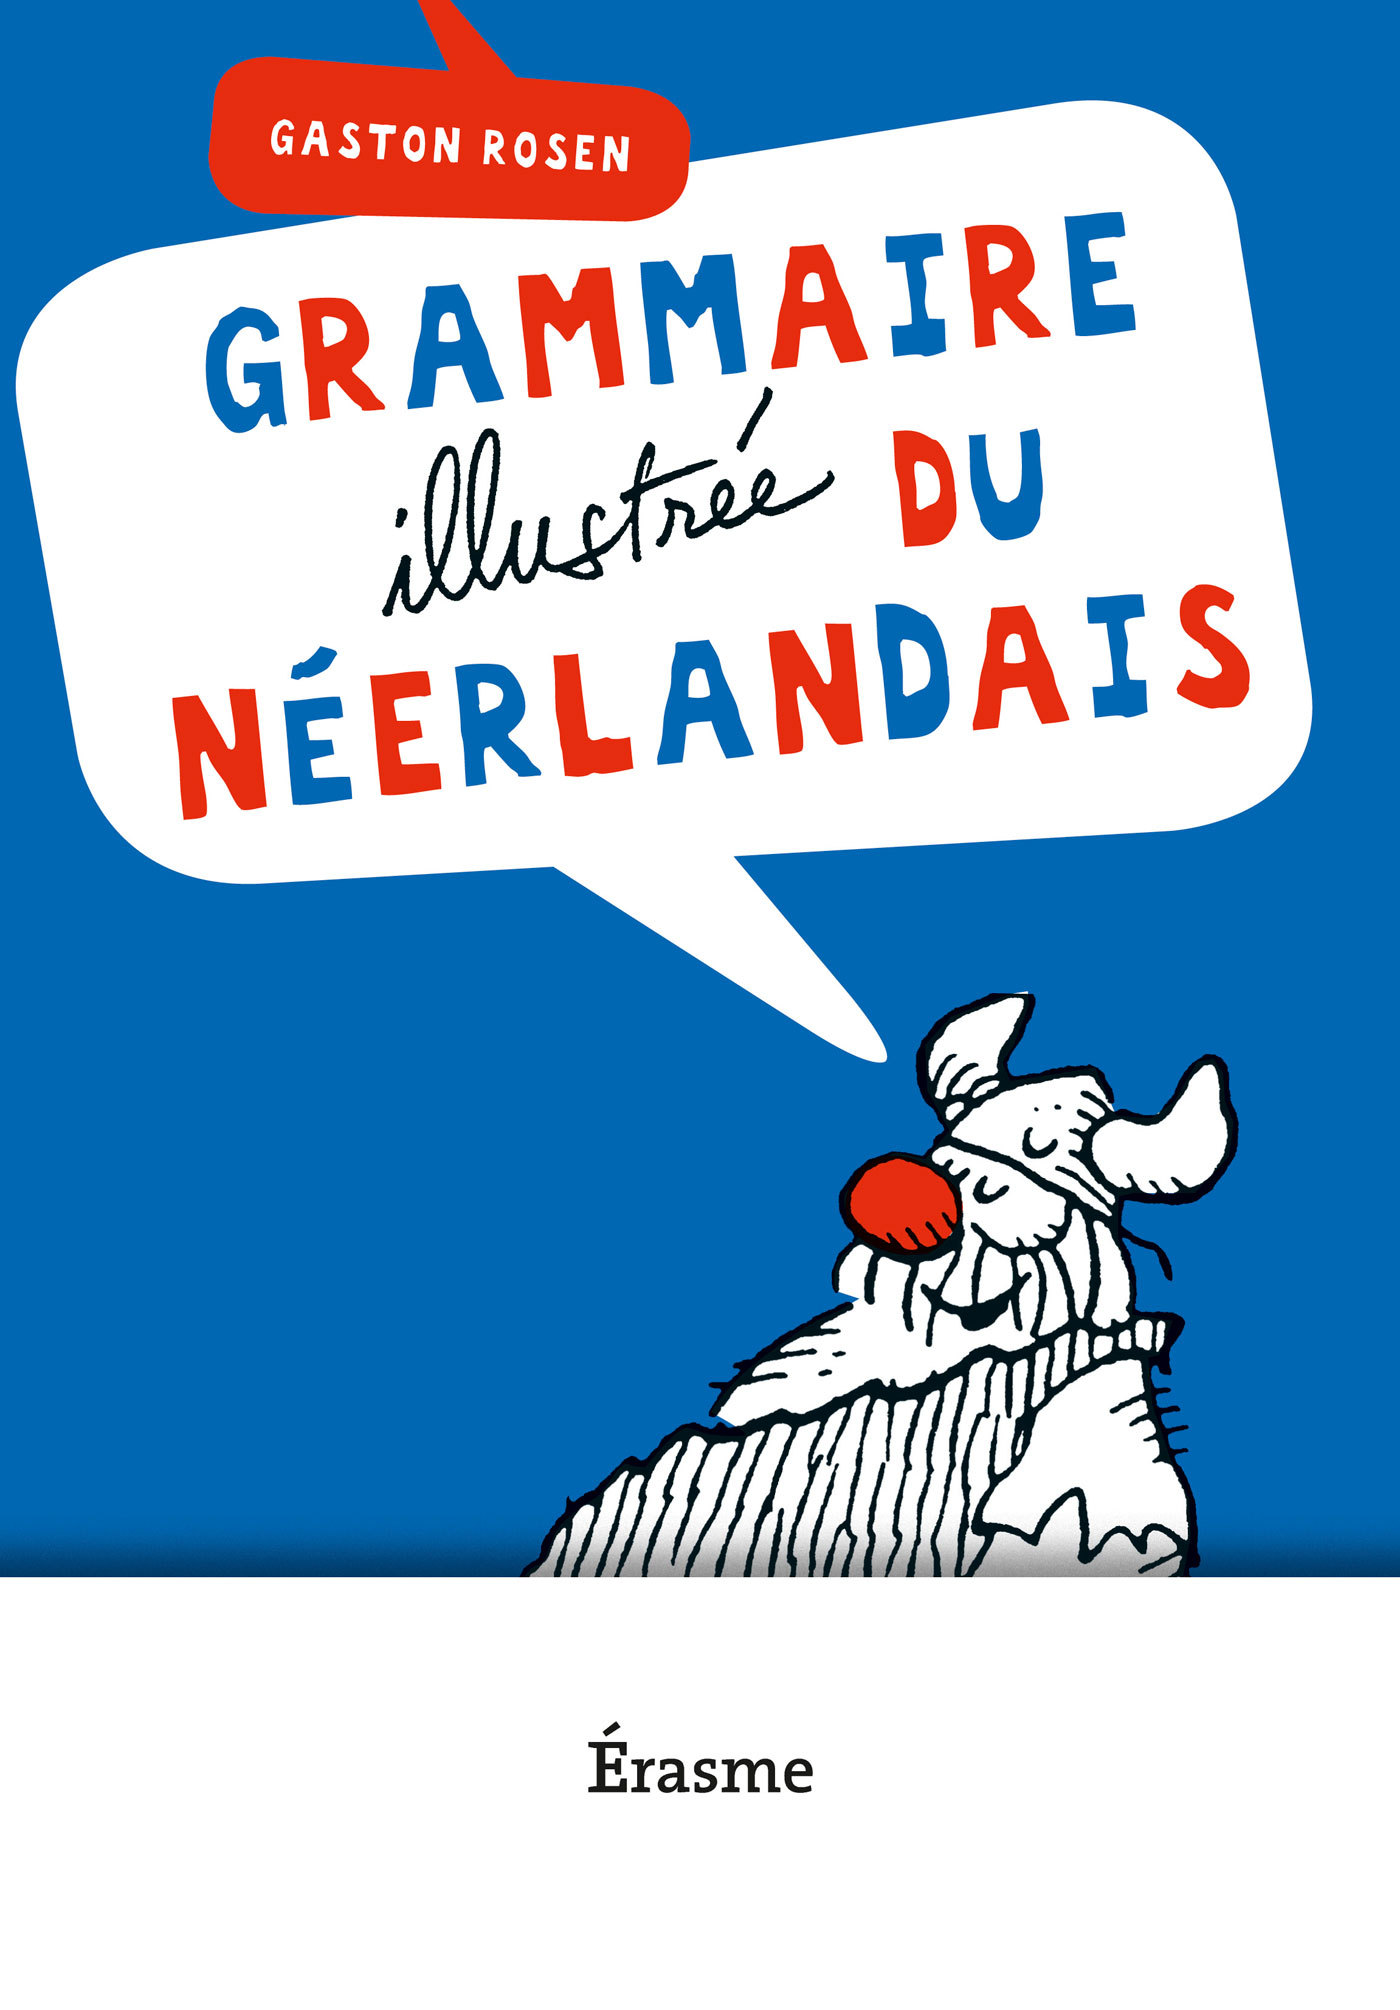 GRAMMAIRE ILLUSTREE DU NEERLANDAIS NED